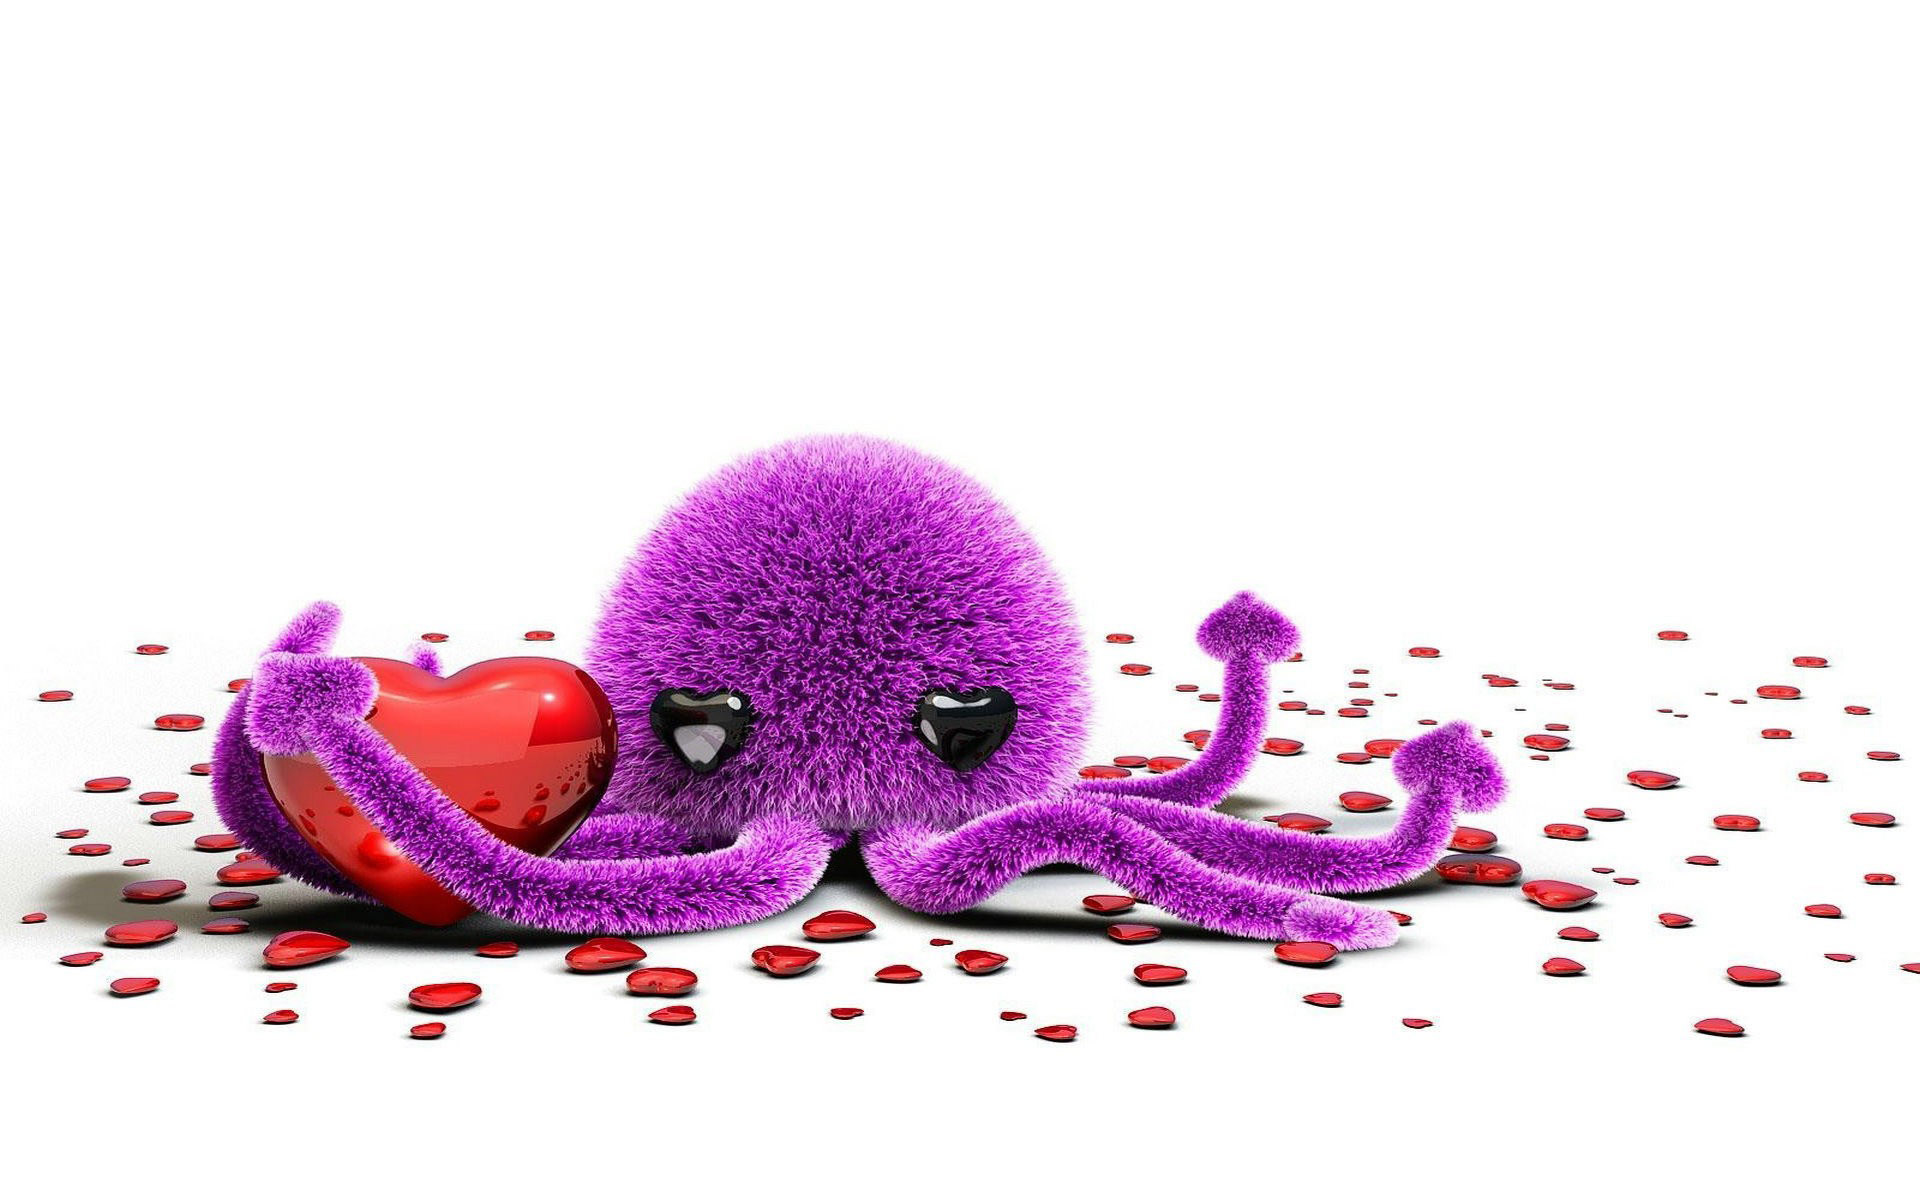 octopus-with-hearts-toy-hd-wallpaper